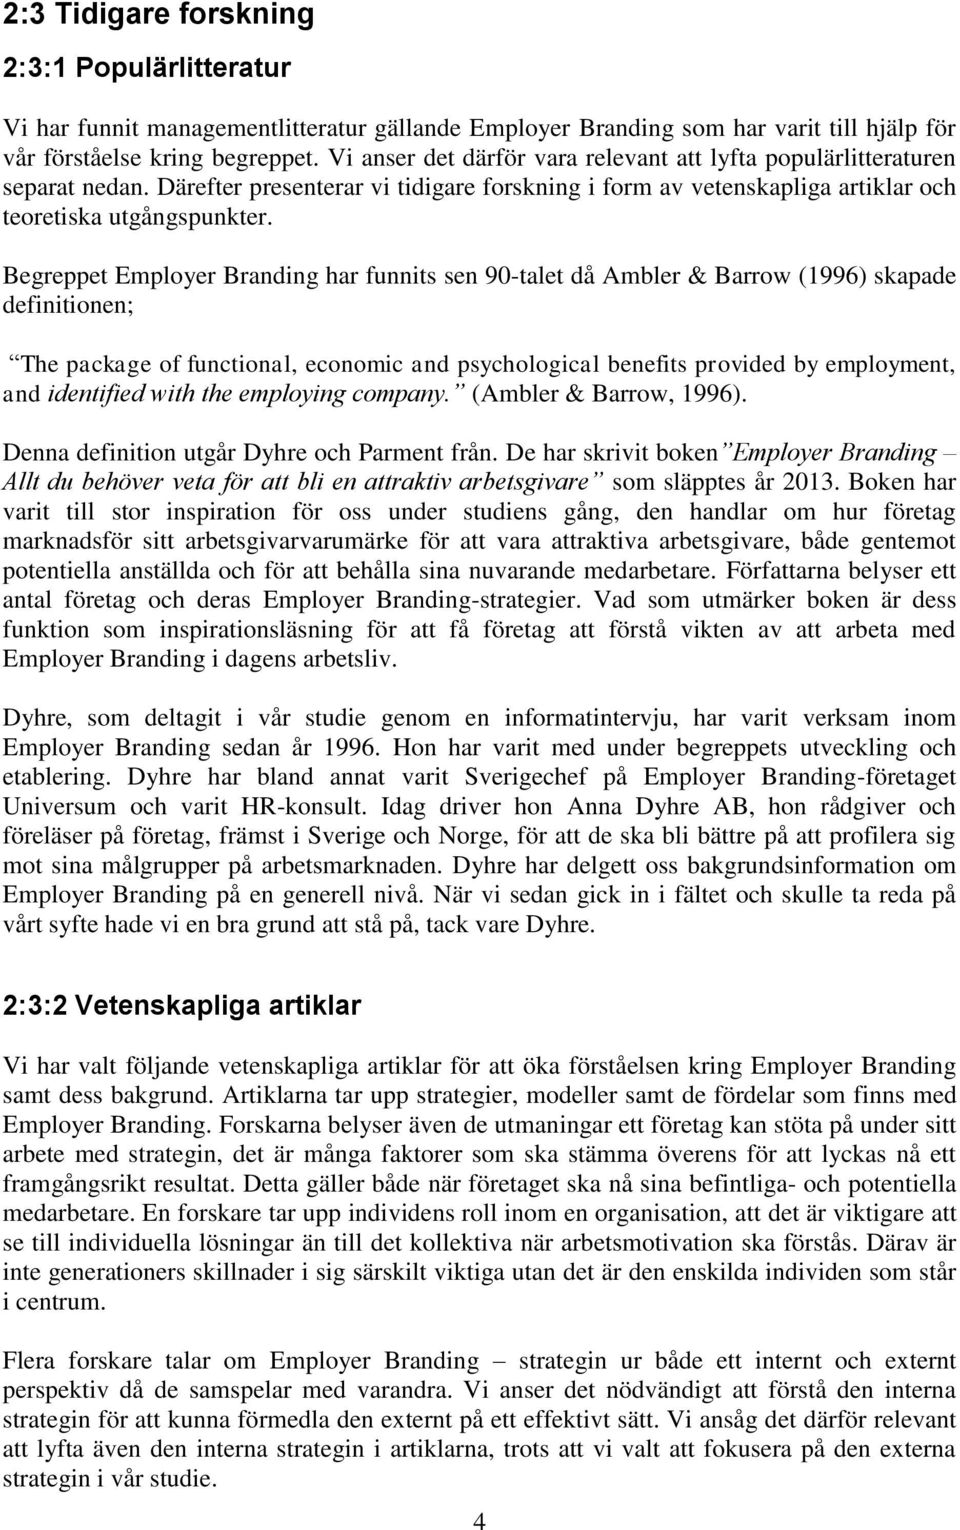 Begreppet Employer Branding har funnits sen 90-talet då Ambler & Barrow (1996) skapade definitionen; The package of functional, economic and psychological benefits provided by employment, and